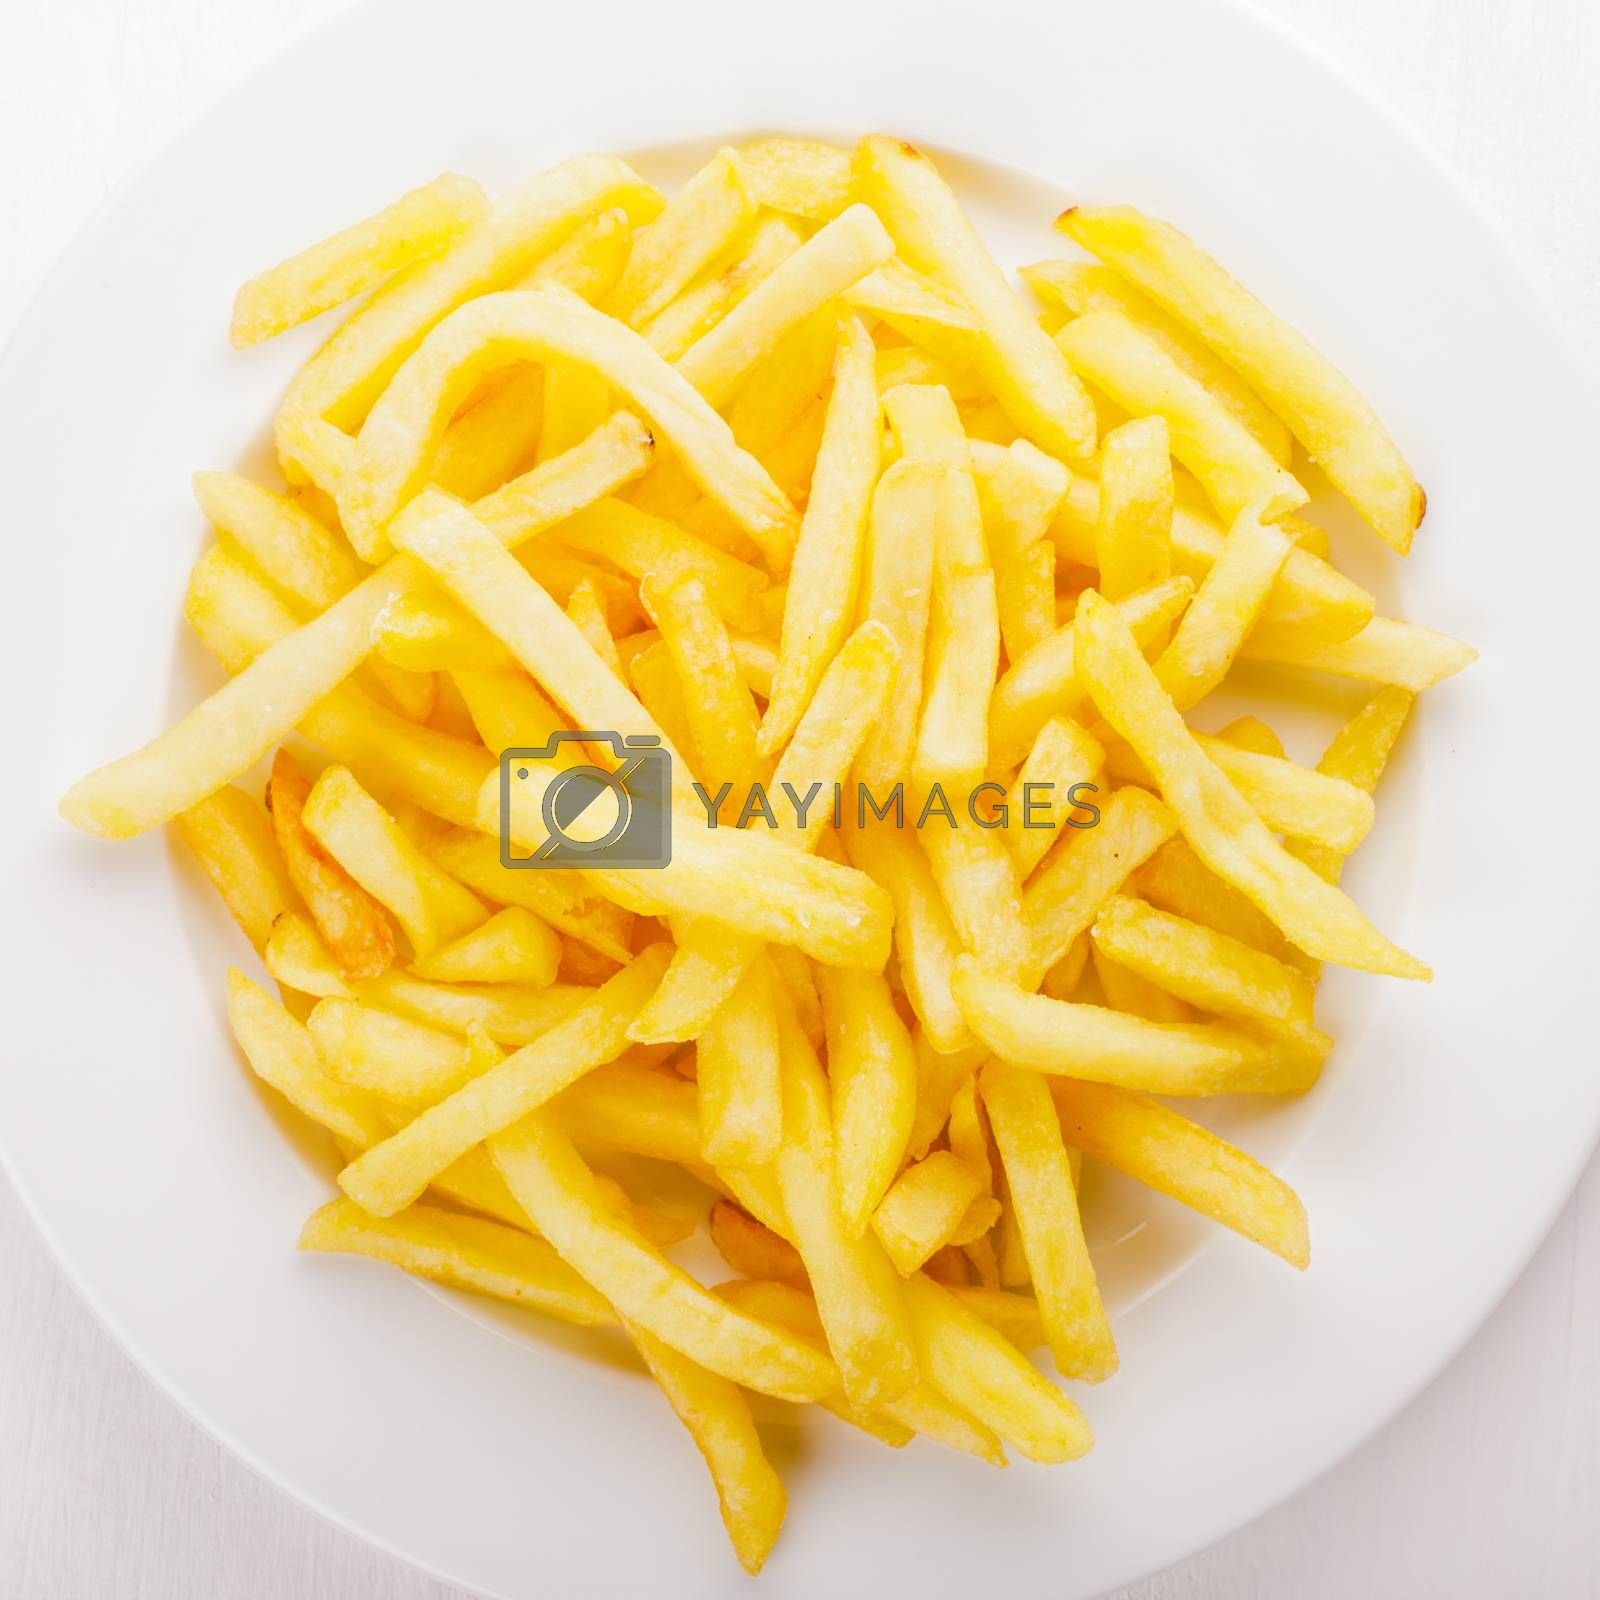 Fried potato on a white plate on the table